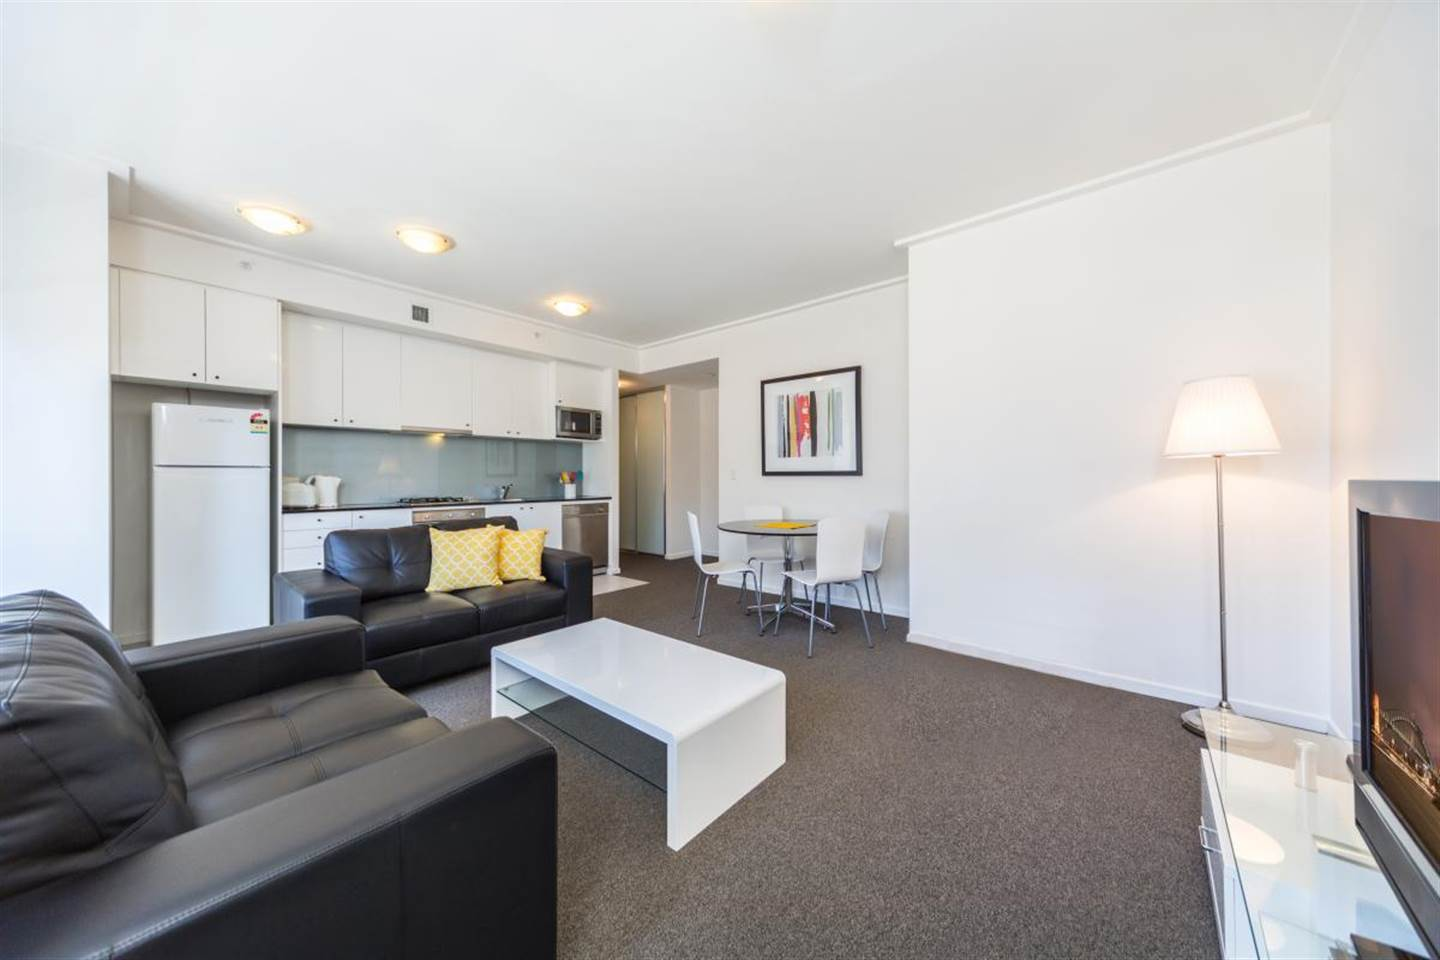 This One Bedroom Apartment features Modern Amenities for a Great Stay